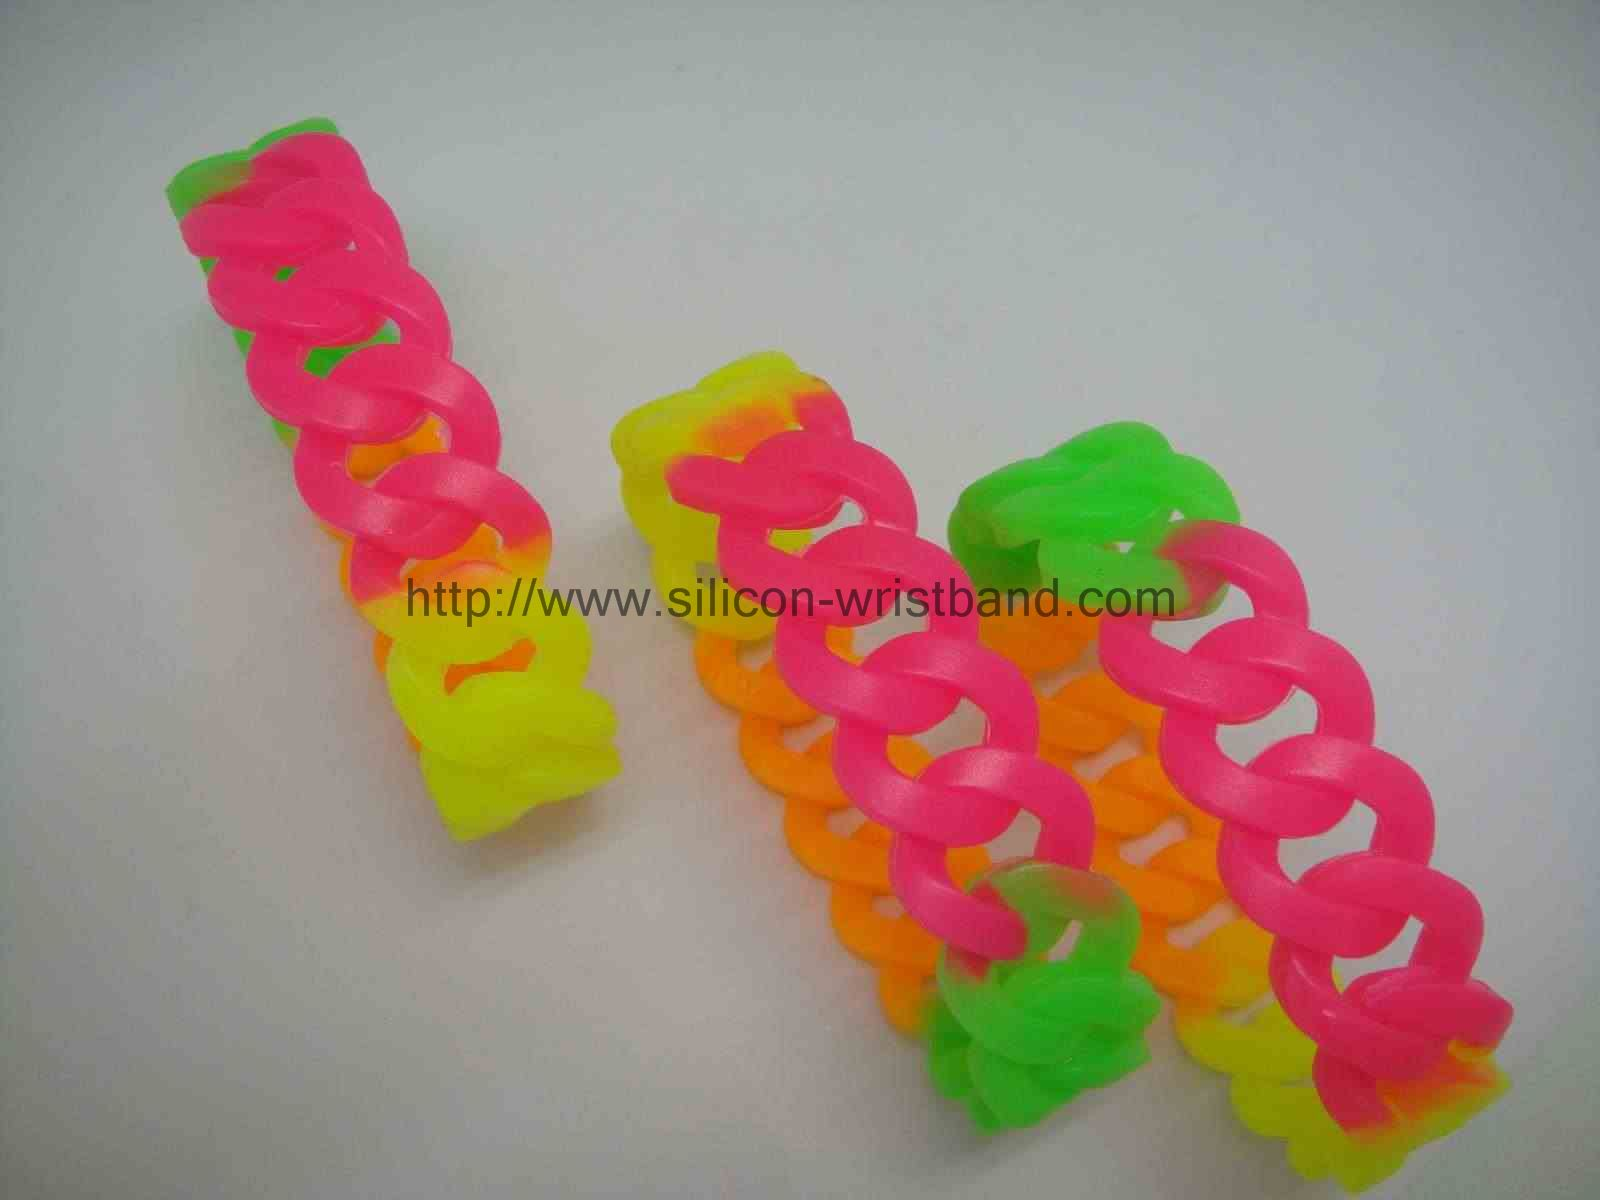 personalized-silicone-wristbands_1339.jpg